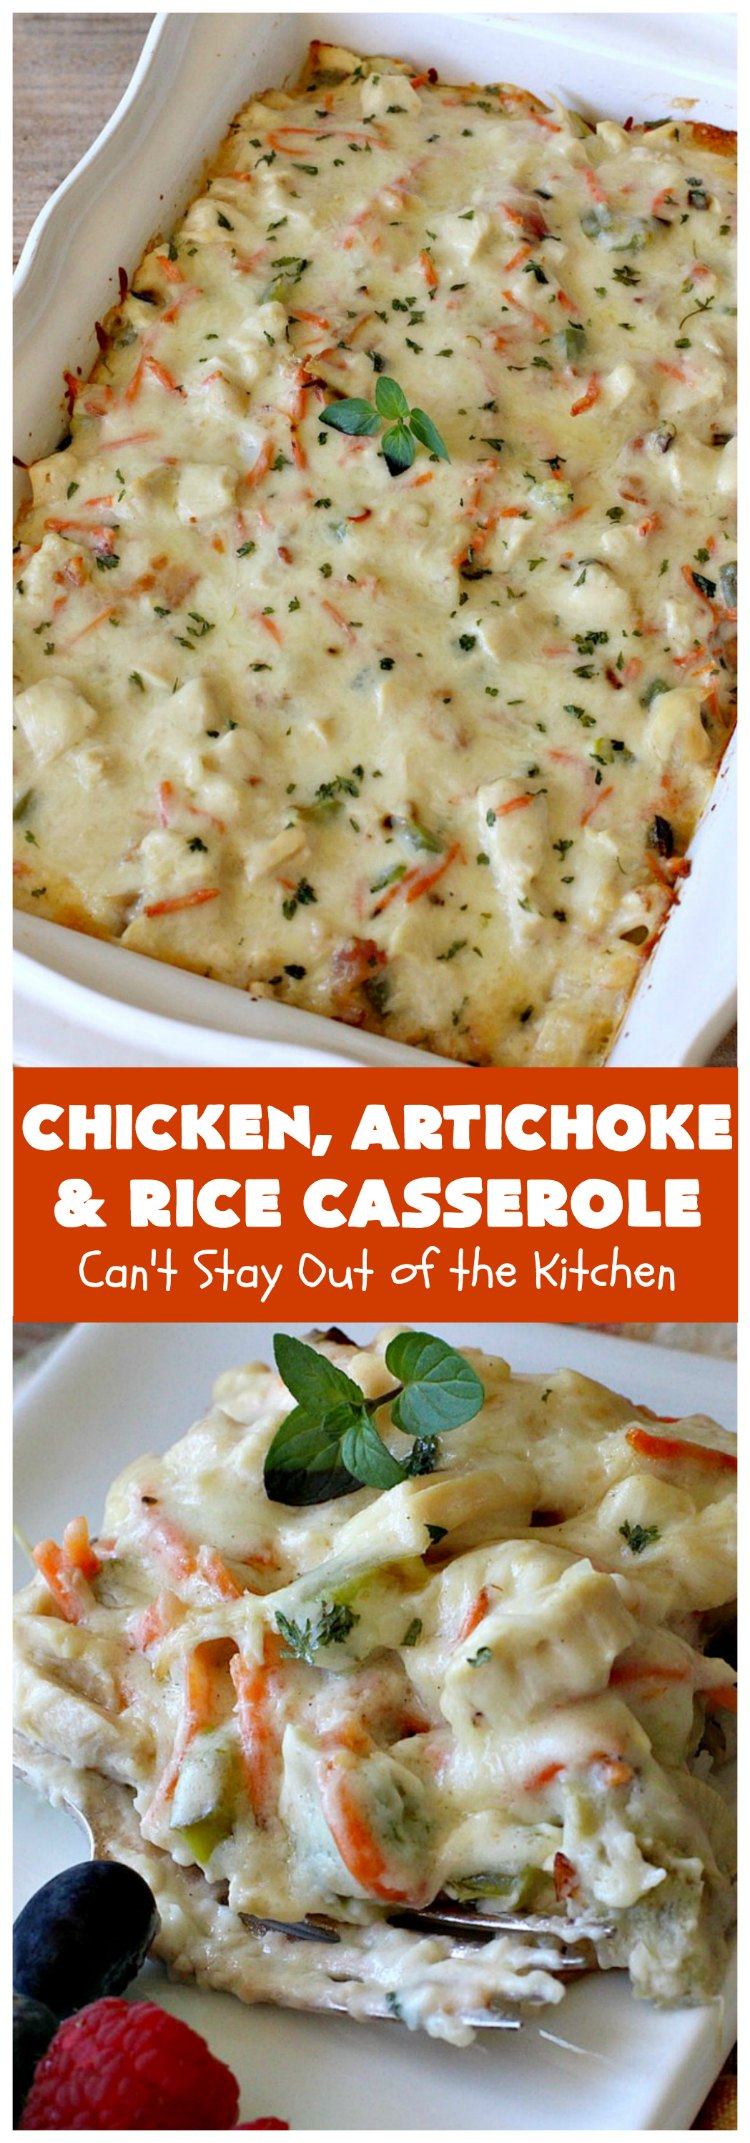 Chicken, Artichoke and Rice Casserole | Can't Stay Out of the Kitchen | this lovely #ChickenCasserole is perfect for company & tastes utterly amazing. #chicken #rice #carrots #artichokes #casserole #ChickenArtichokeAndRiceCasserole